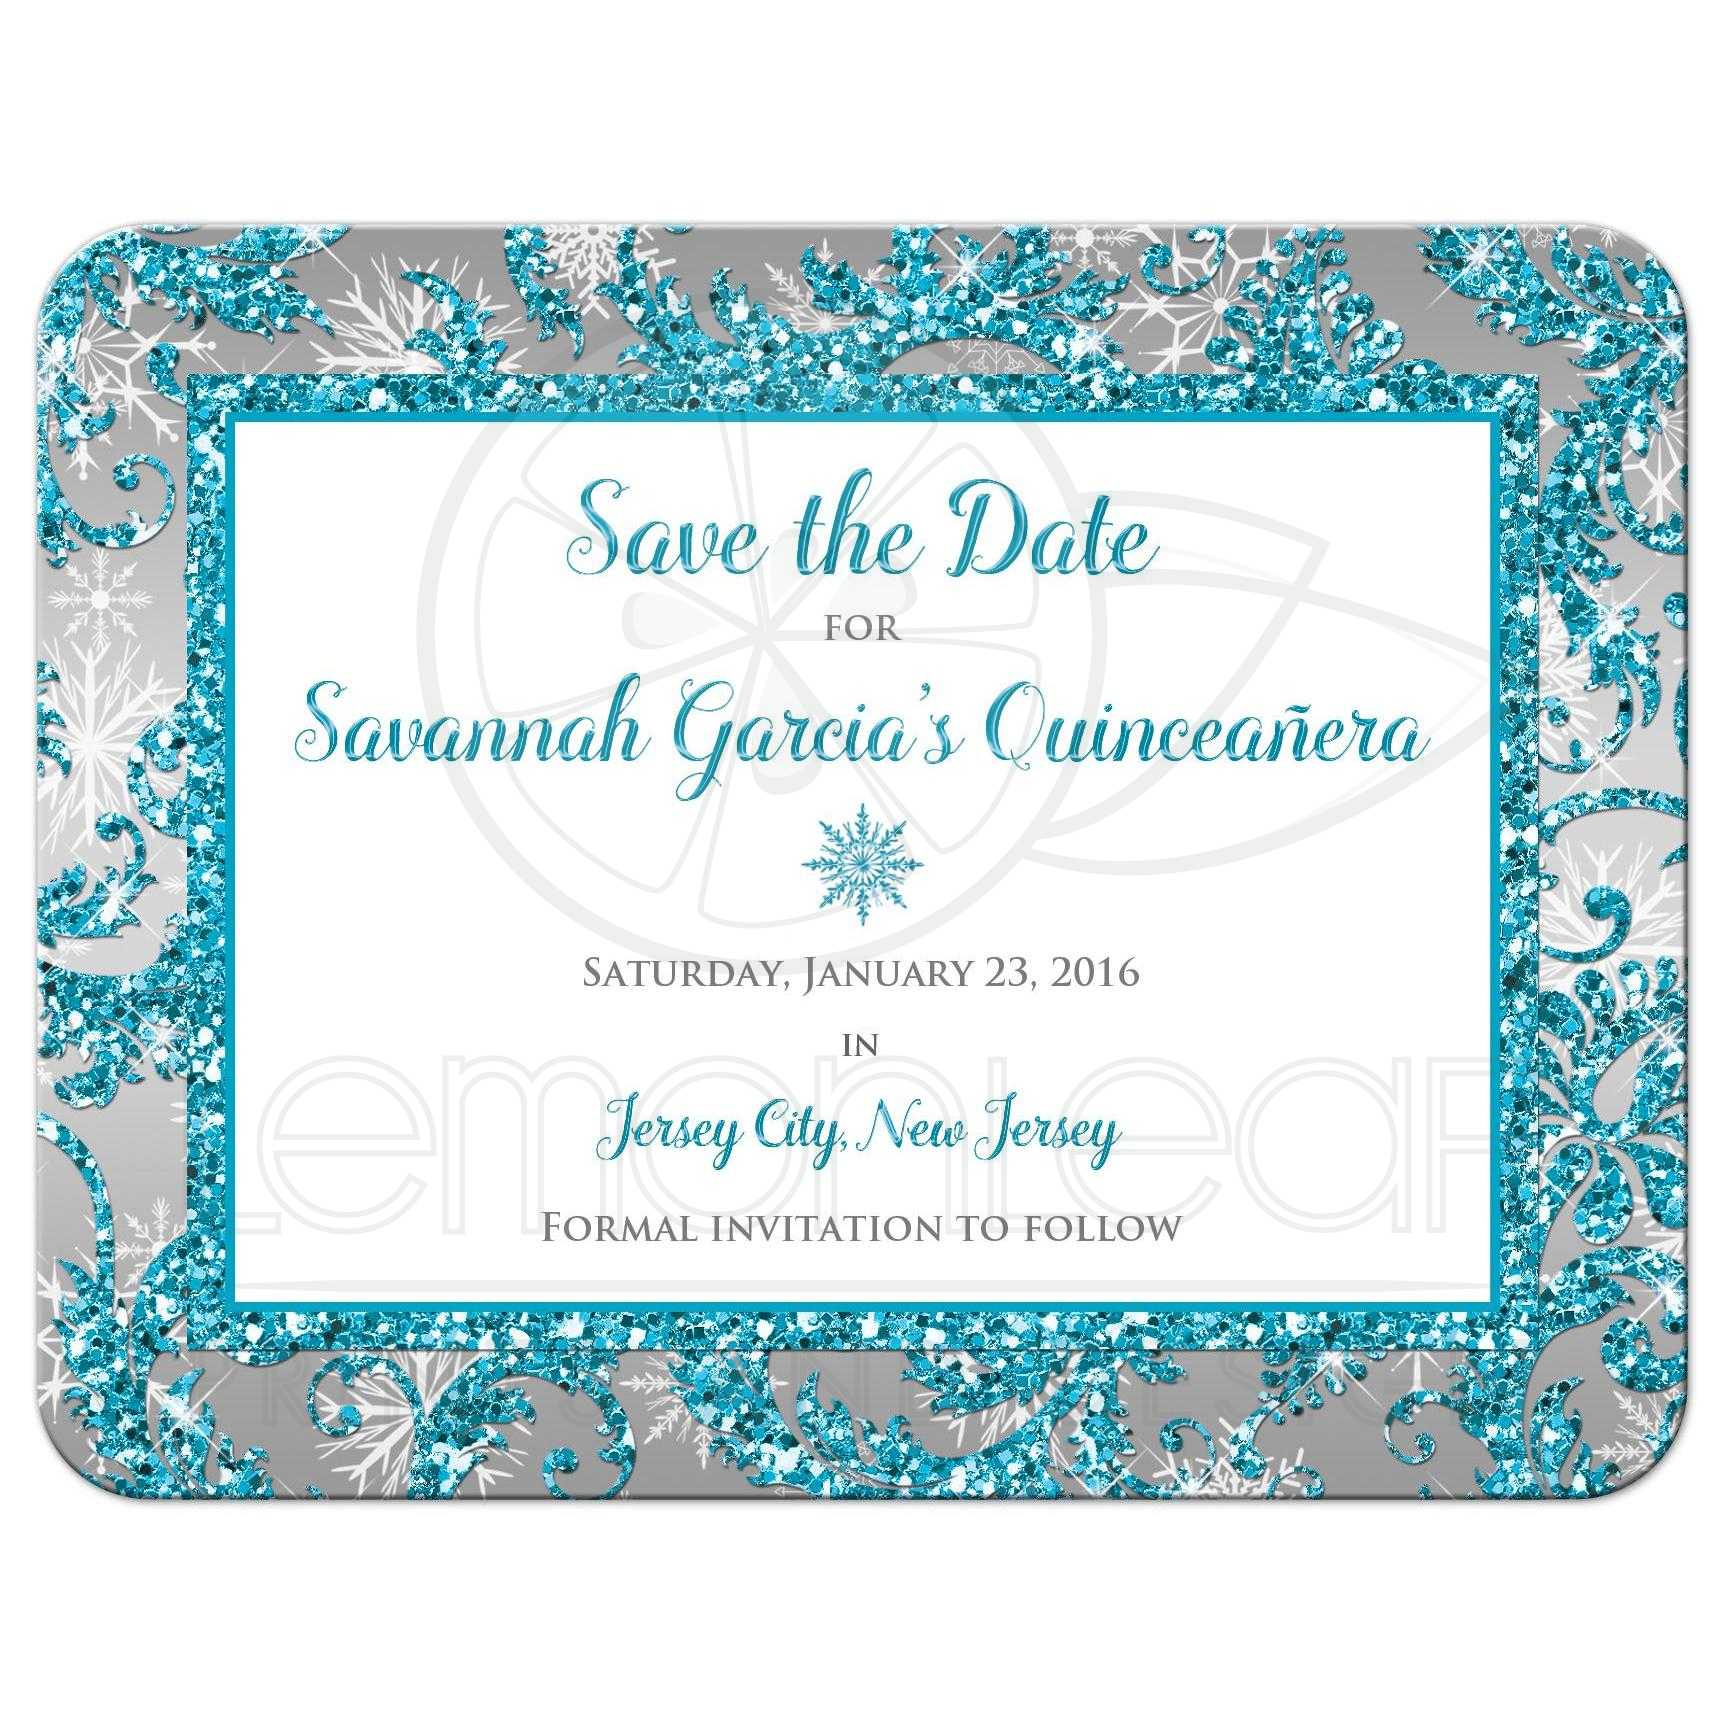 Quinceaera Save the Date Card Winter Wonderland Turquoise